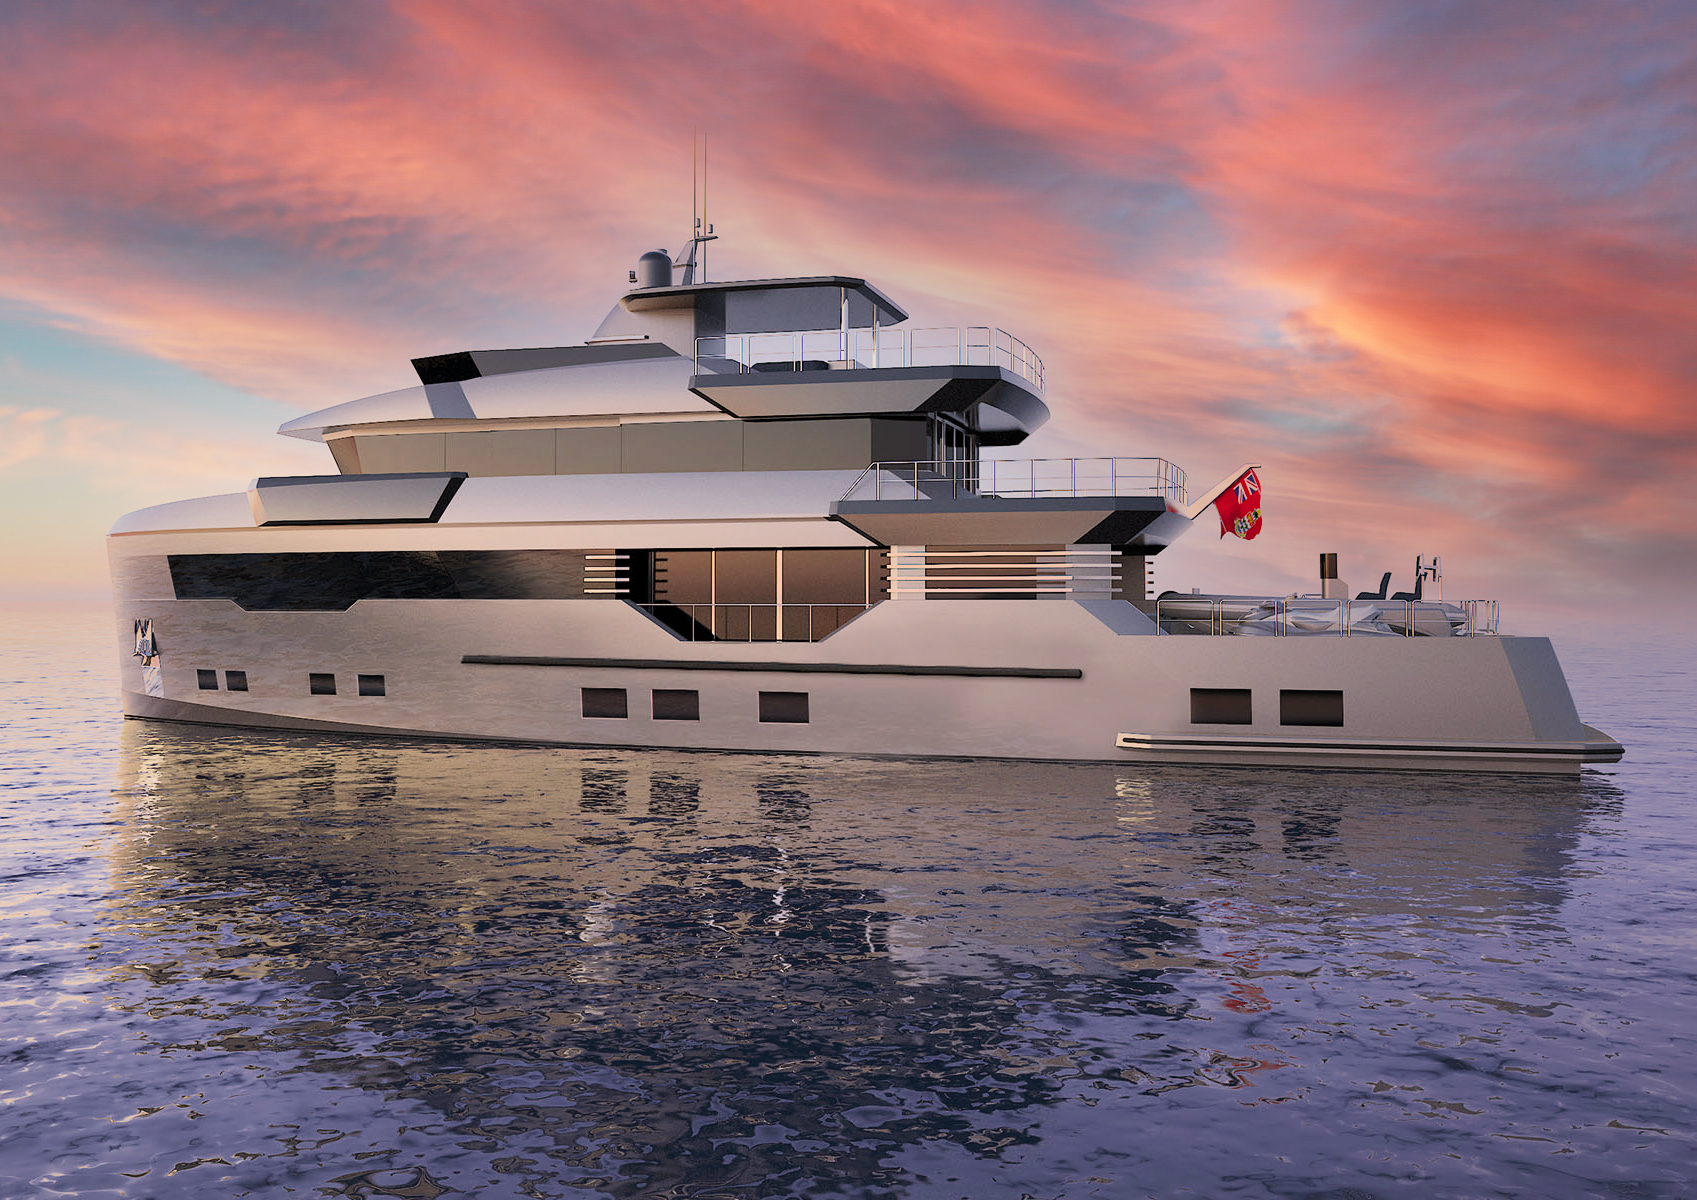 mod 2_yacht-pacifico-32-sunset